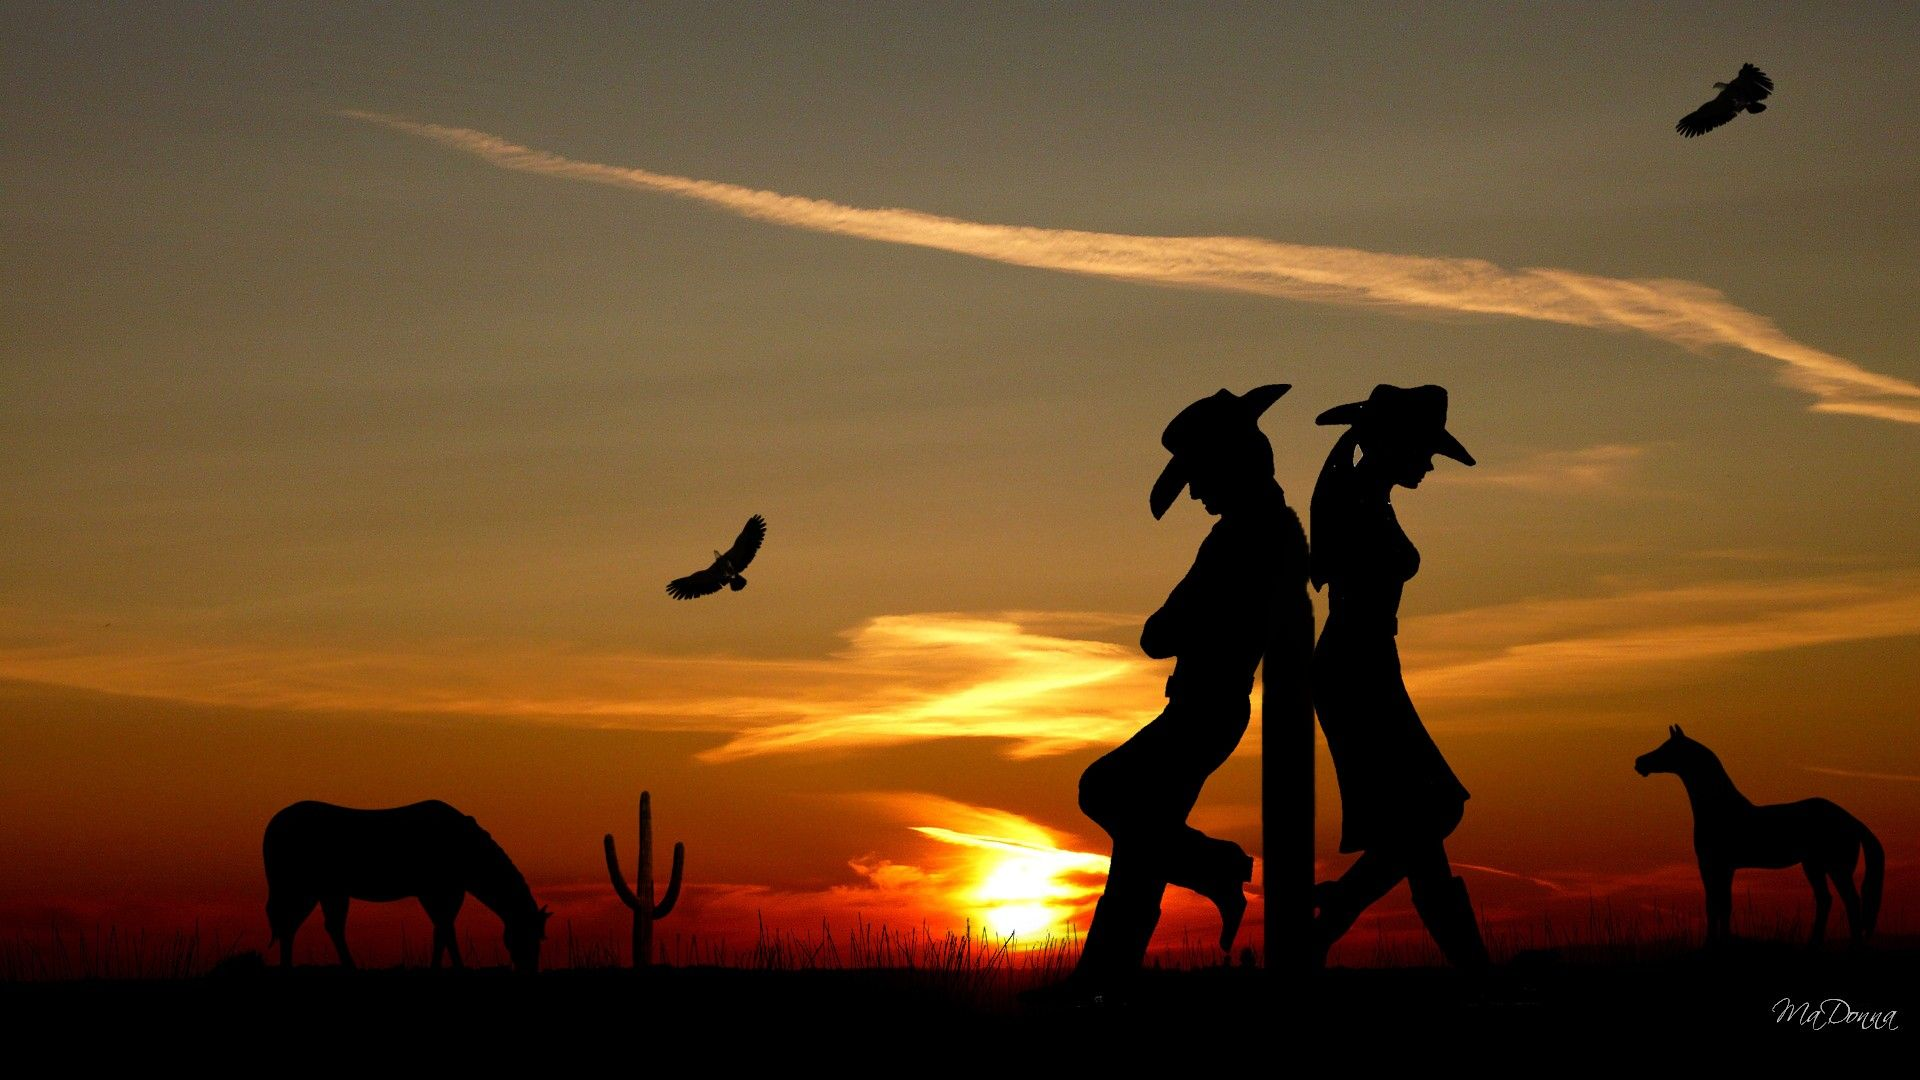 Cactus Cowboy Western Romance Wallpapers Free Download Cowboy Pictures Country Backgrounds Horse Wallpaper